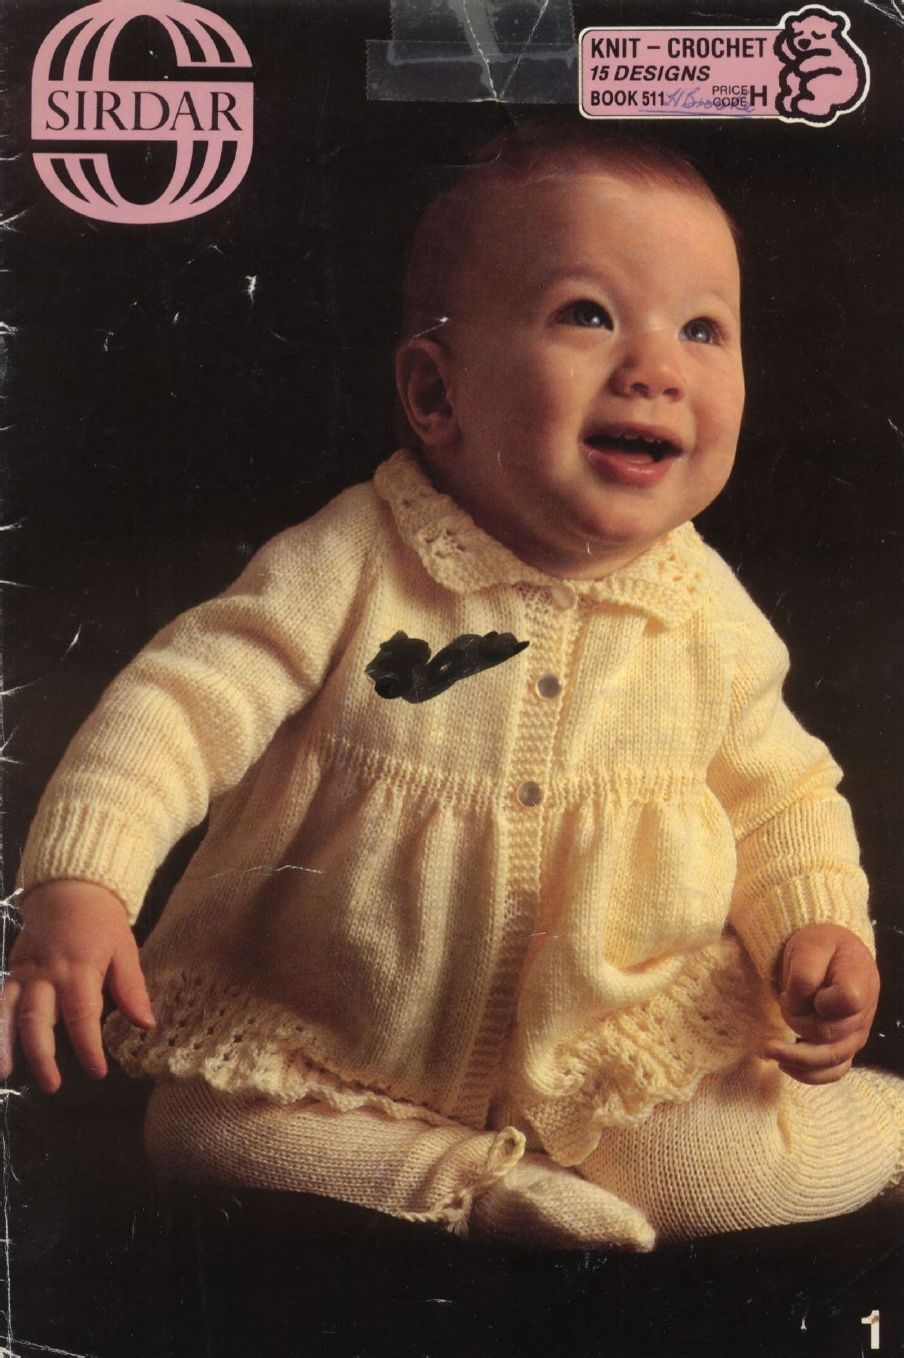 Sirdar 511 baby layette knitting pattern knitting for babies sirdar 511 baby layette knitting pattern bankloansurffo Image collections